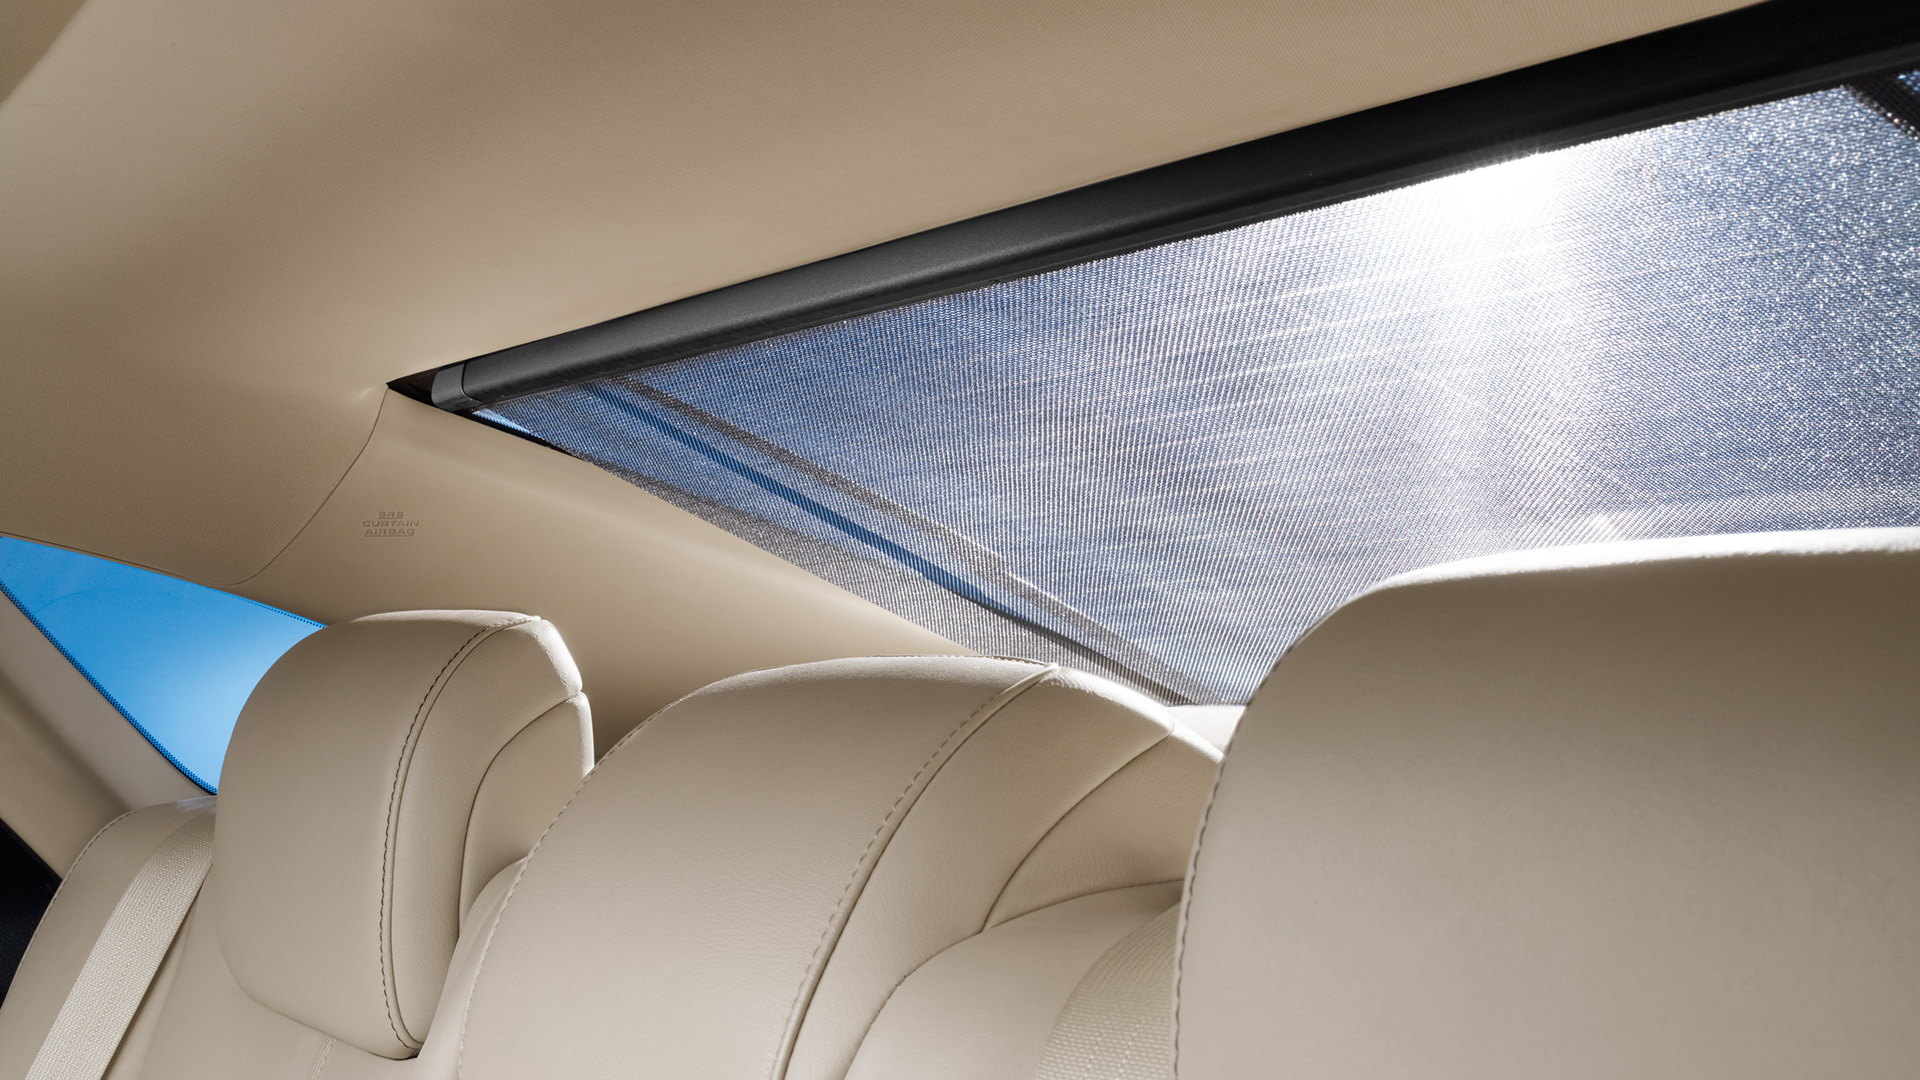 2017 Toyota Avalon Moon Roof